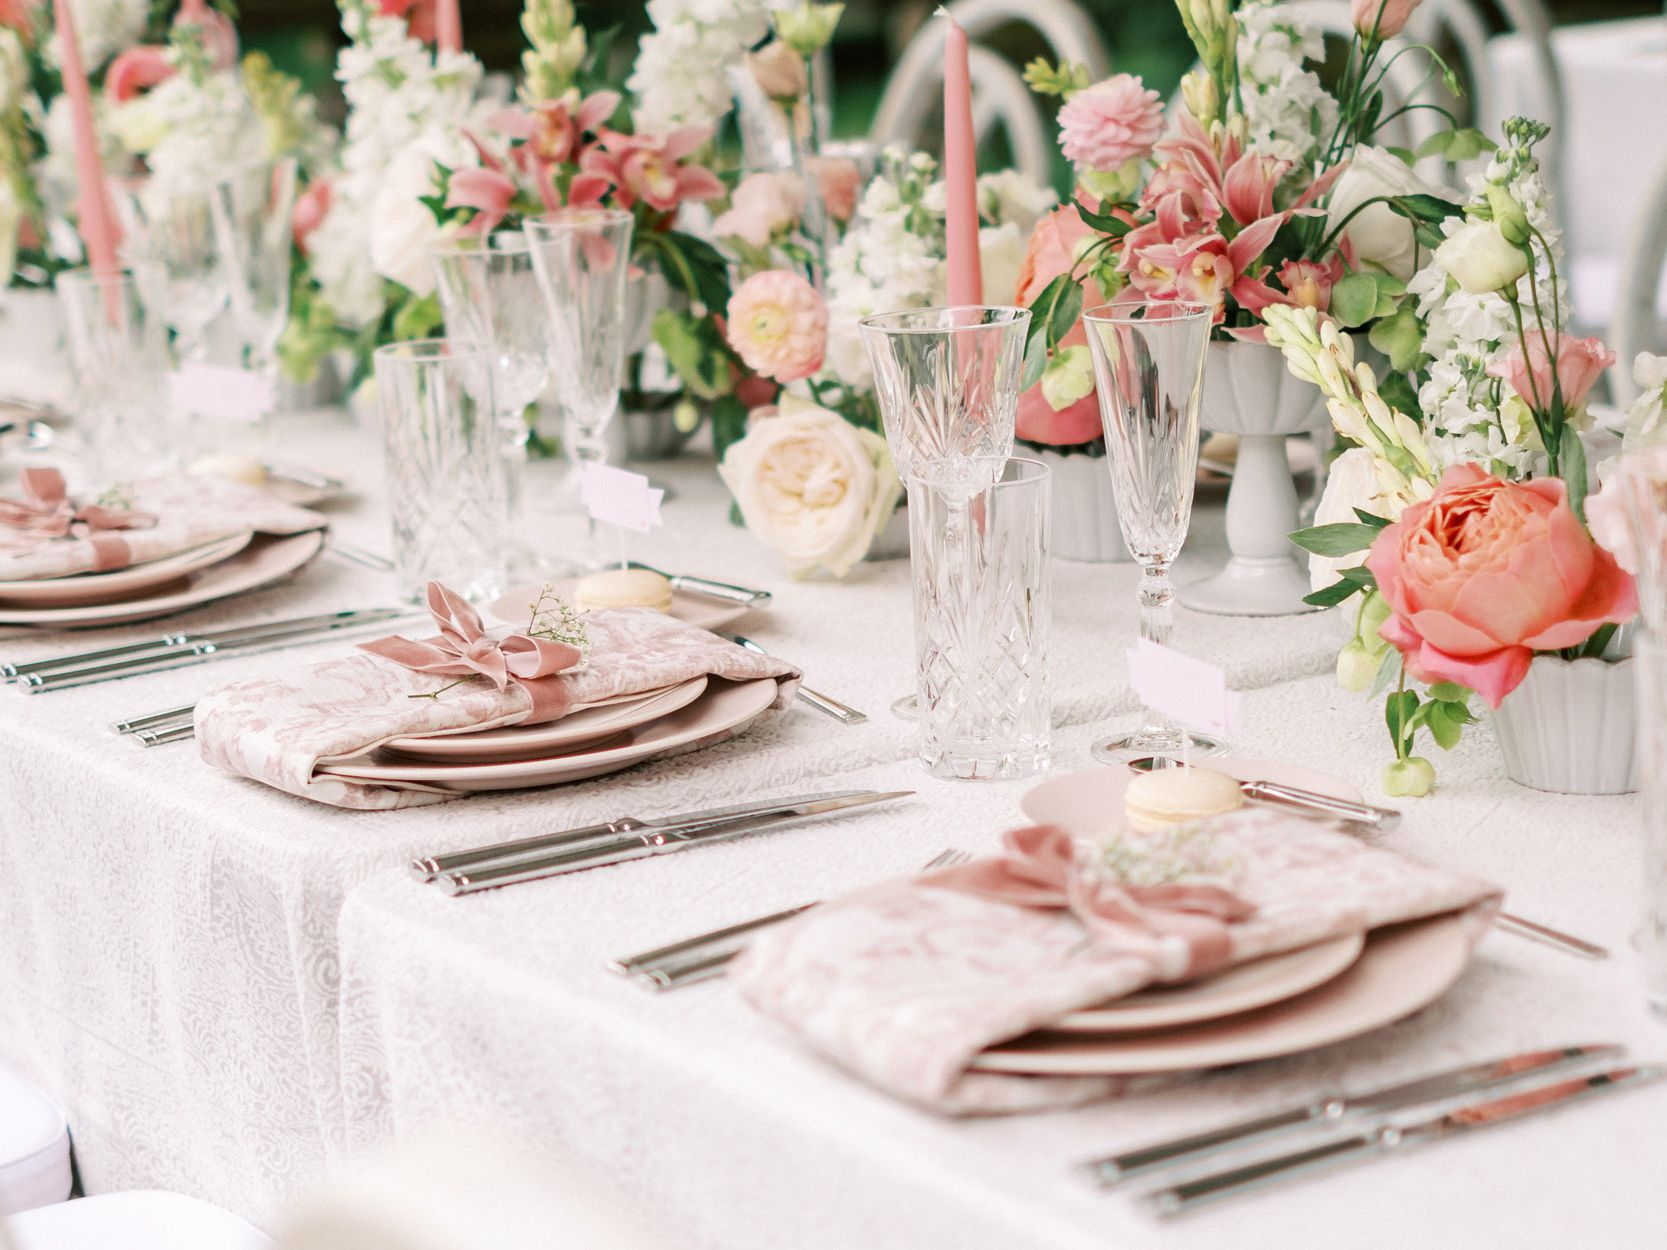 How Much Does a Wedding Planner Cost?